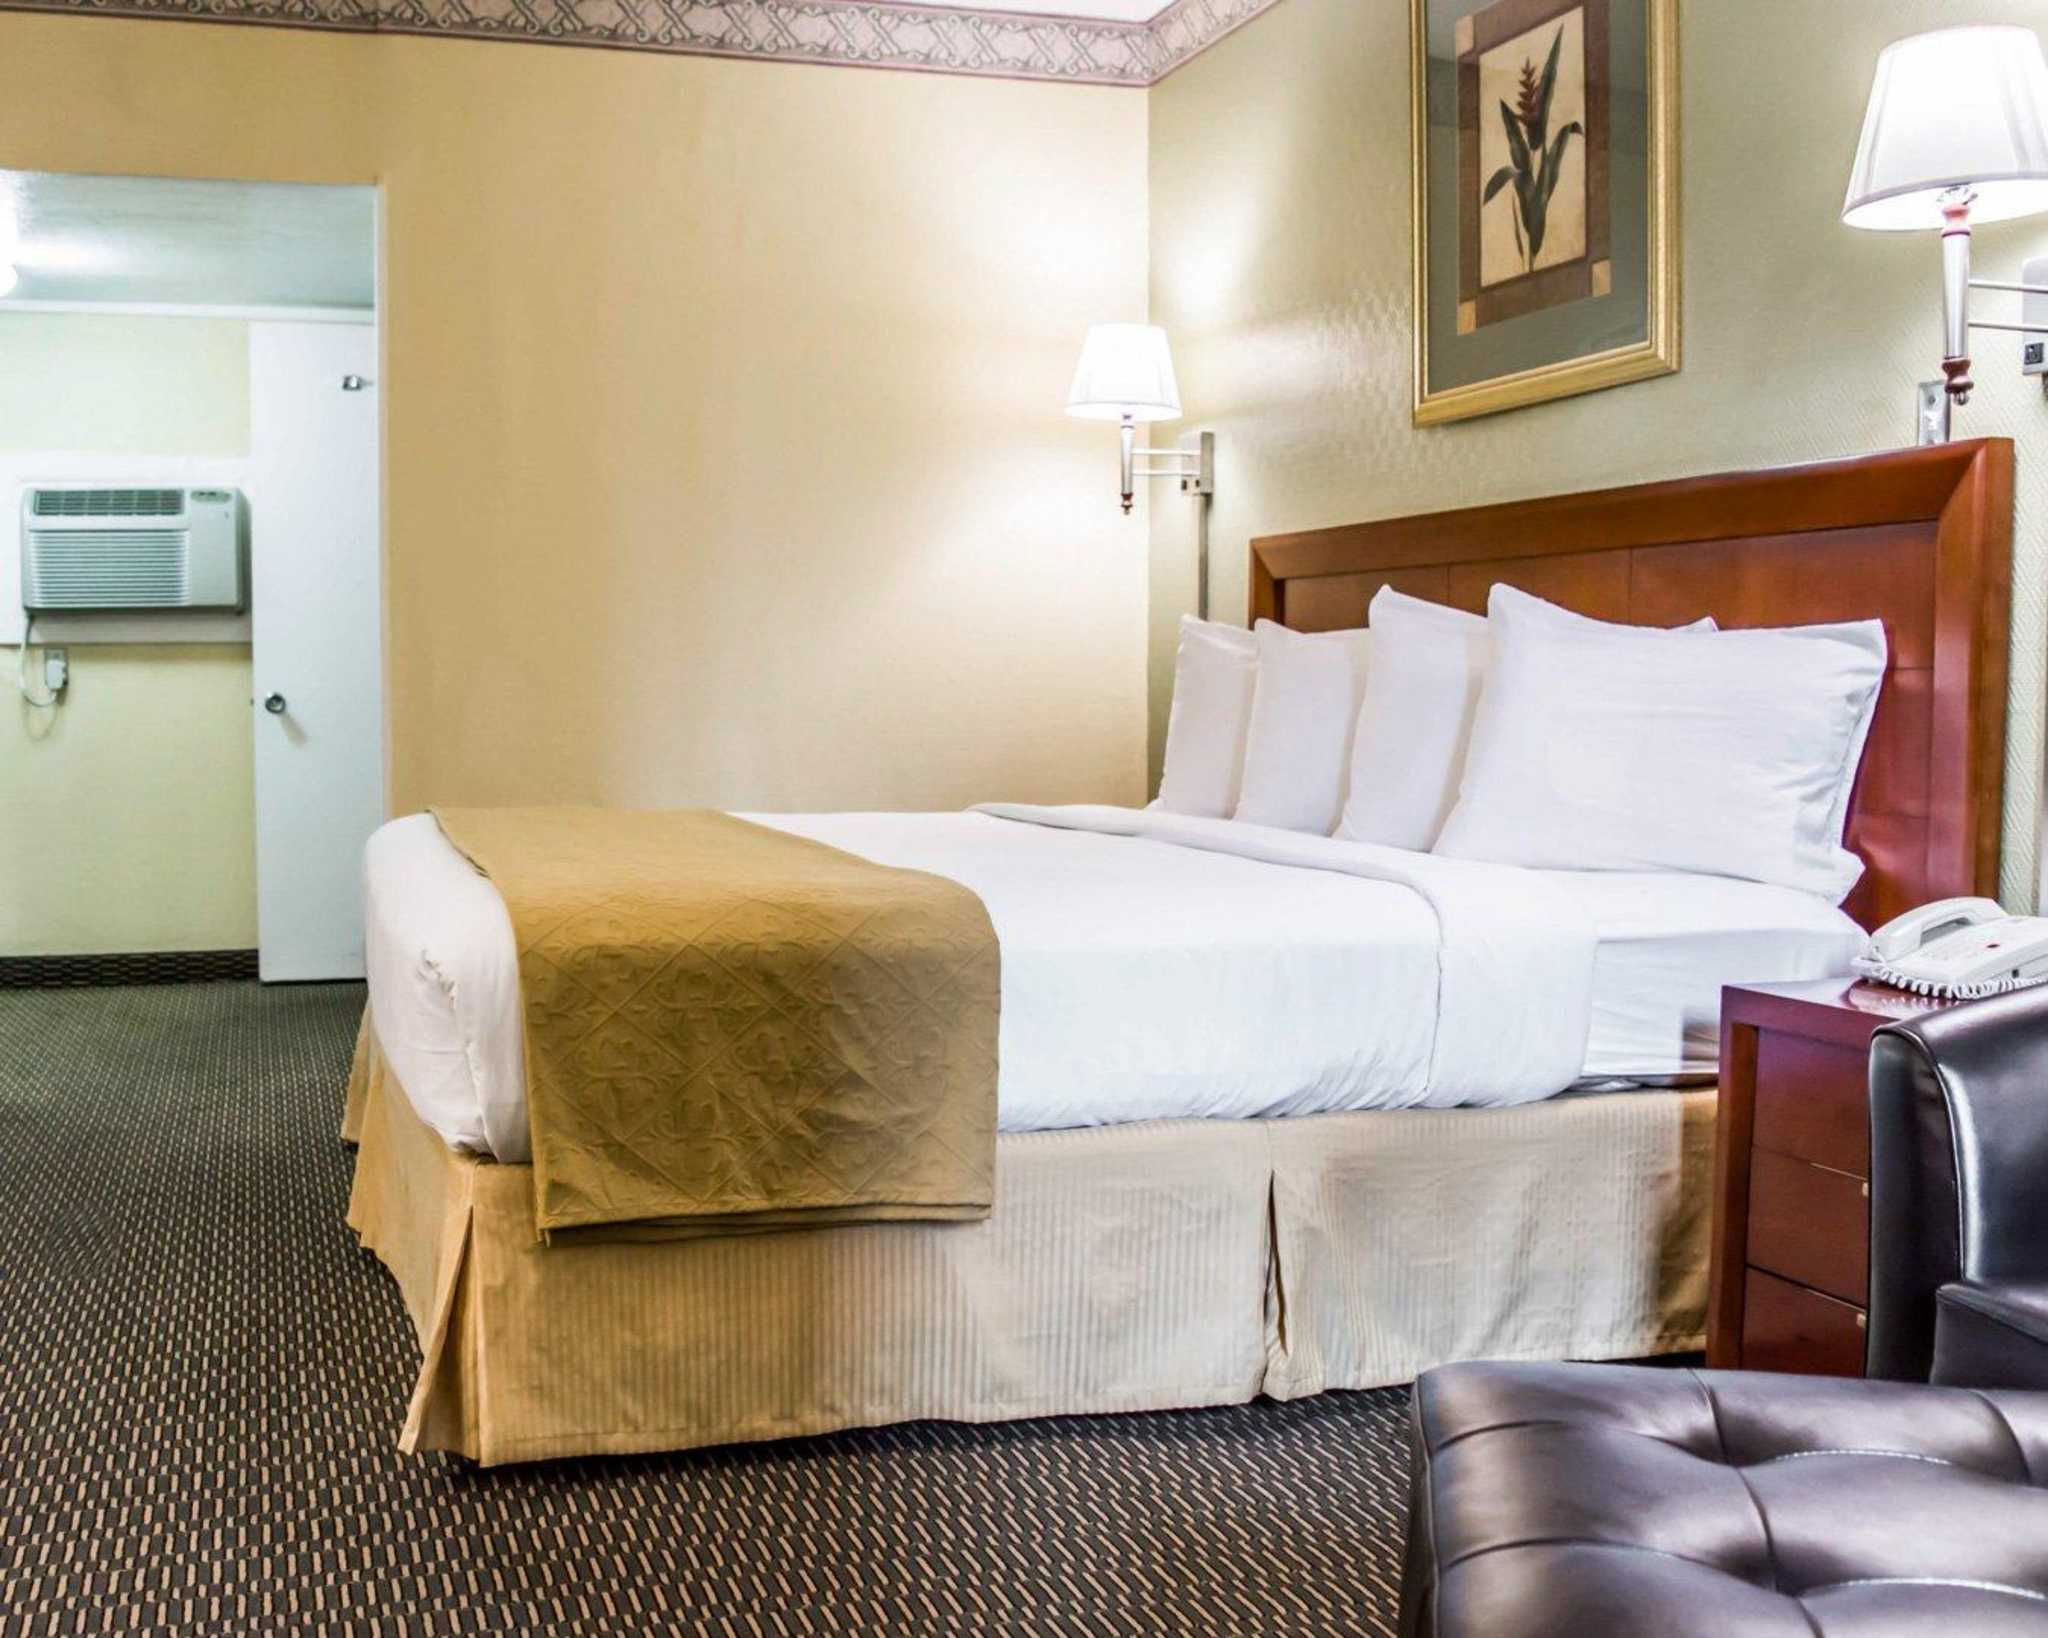 Quality Inn Airport - Cruise Port image 10